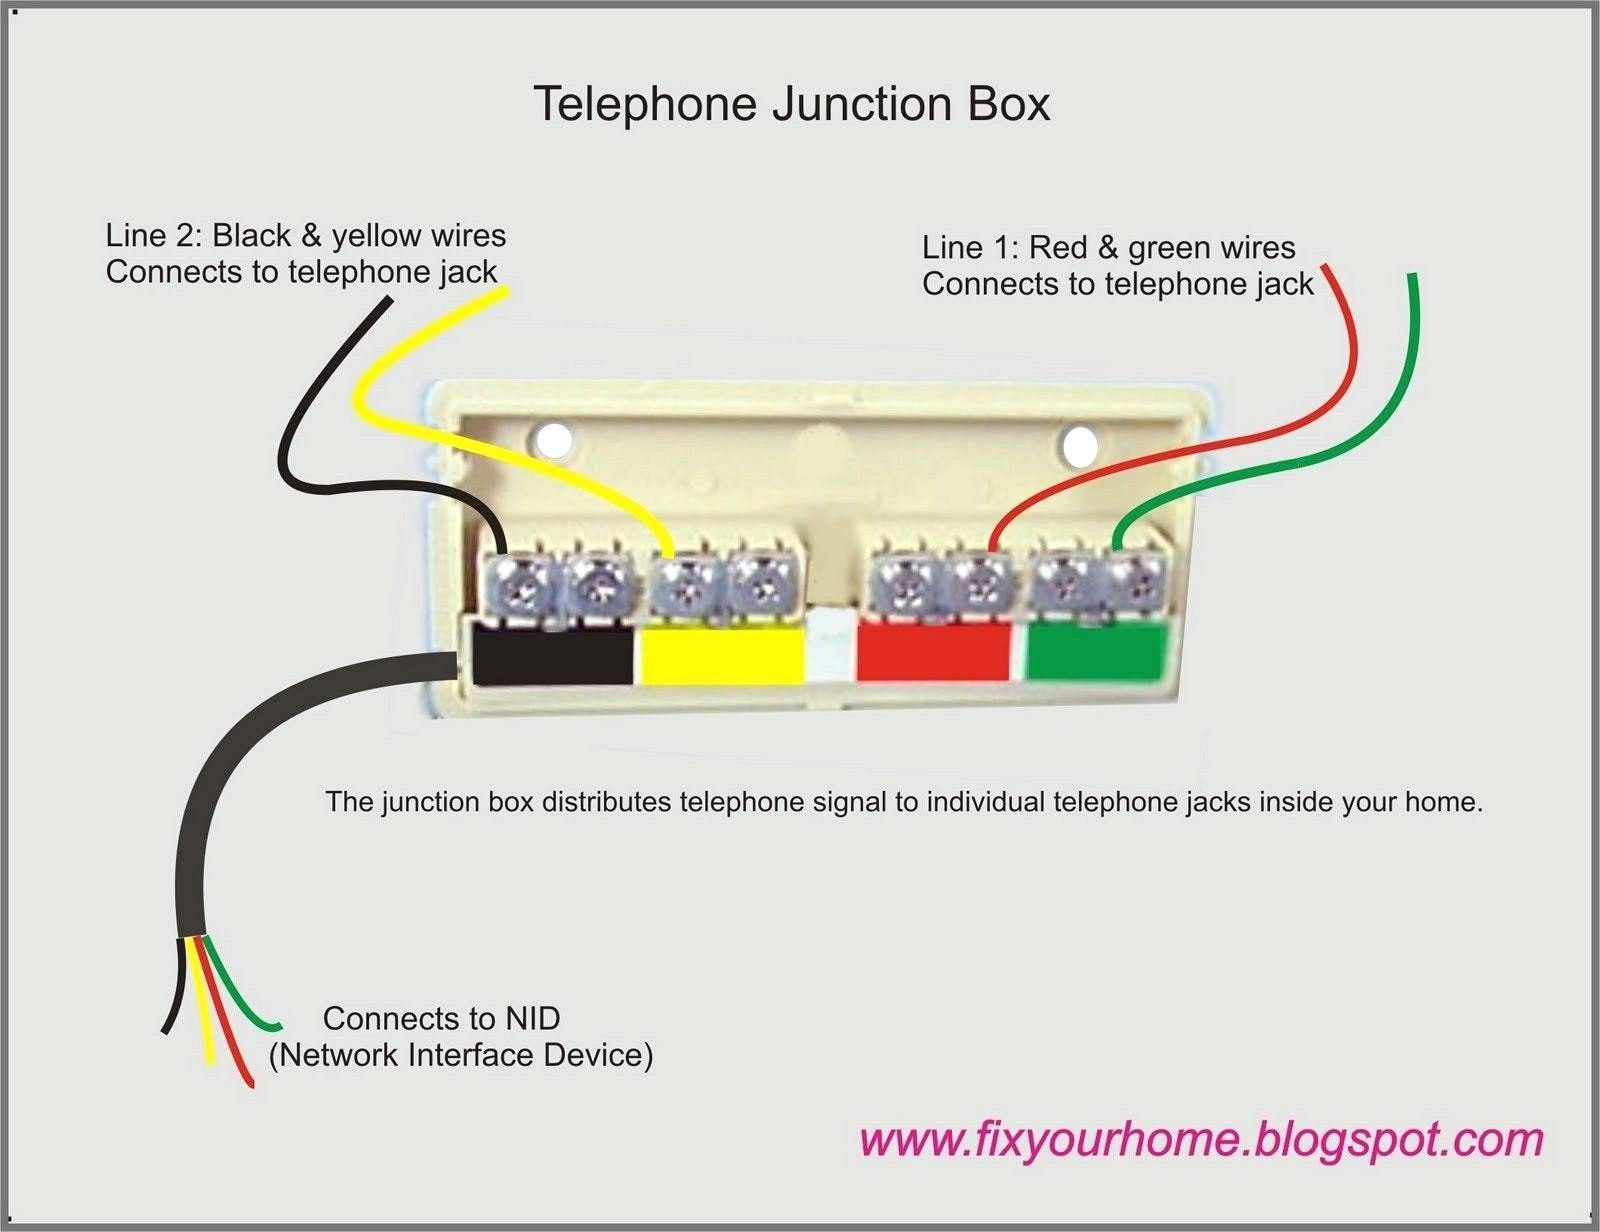 Unique Wiring Diagram For Home Telephone Diagram Diagramsample Diagramtemplate Wiringdiagram Diagramchart Worksheet Telephone Jack Phone Jack Power Wire